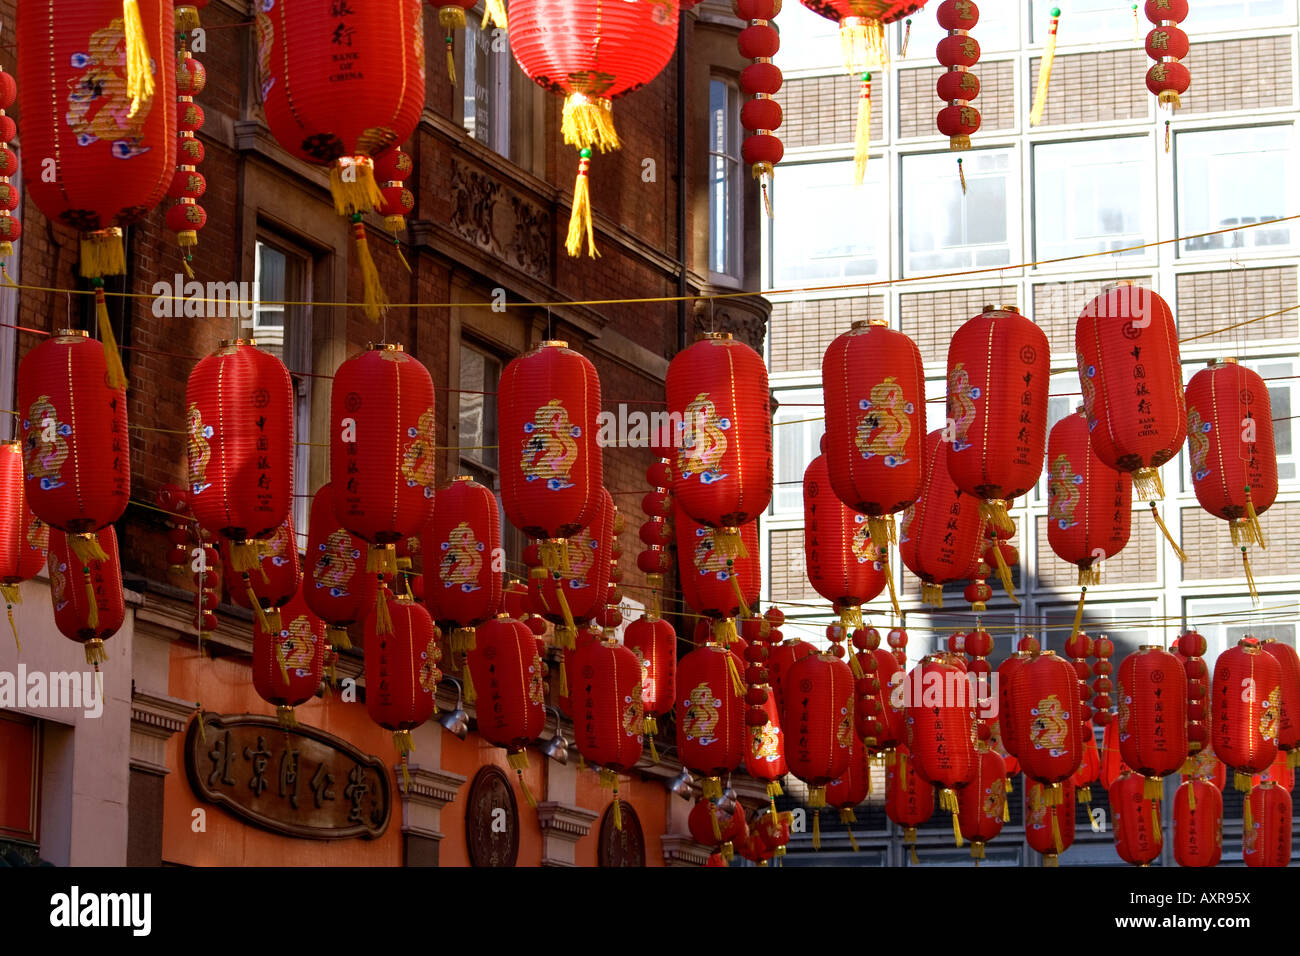 Chinese New Year lantern decorations in Chinatown, London ...